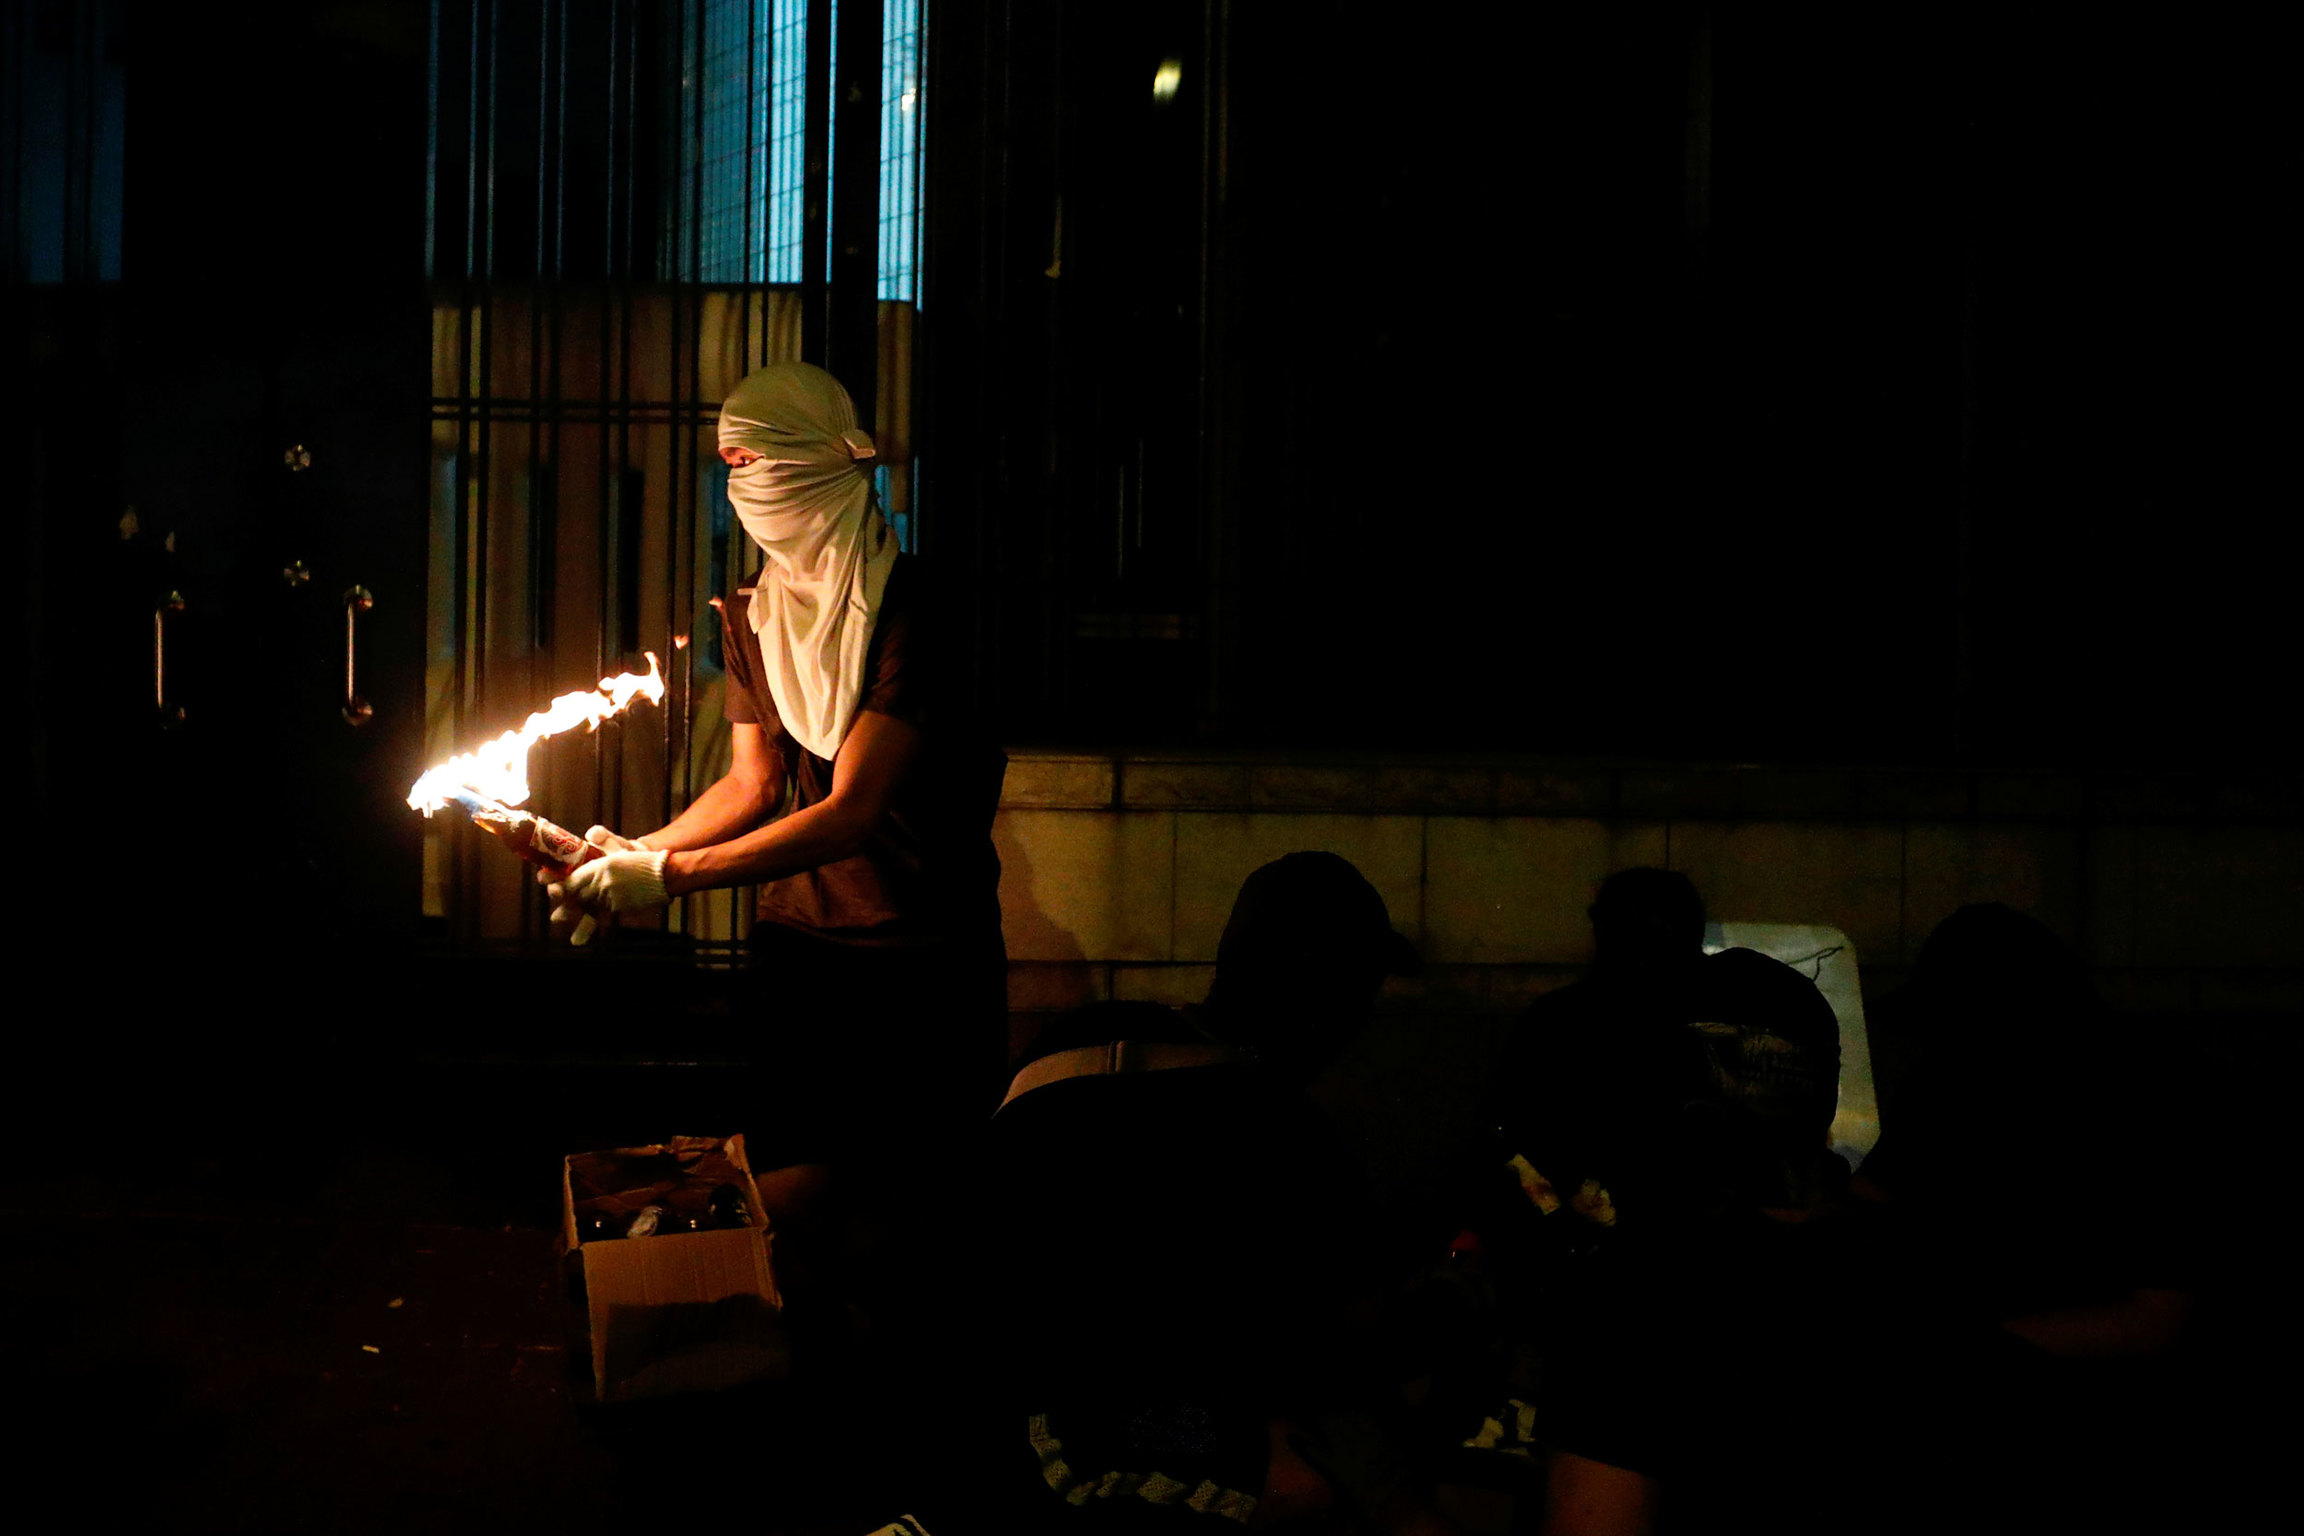 An anti-government protester is shown holding a Molotov cocktail set ablaze and wearing white mask covering his face and head.